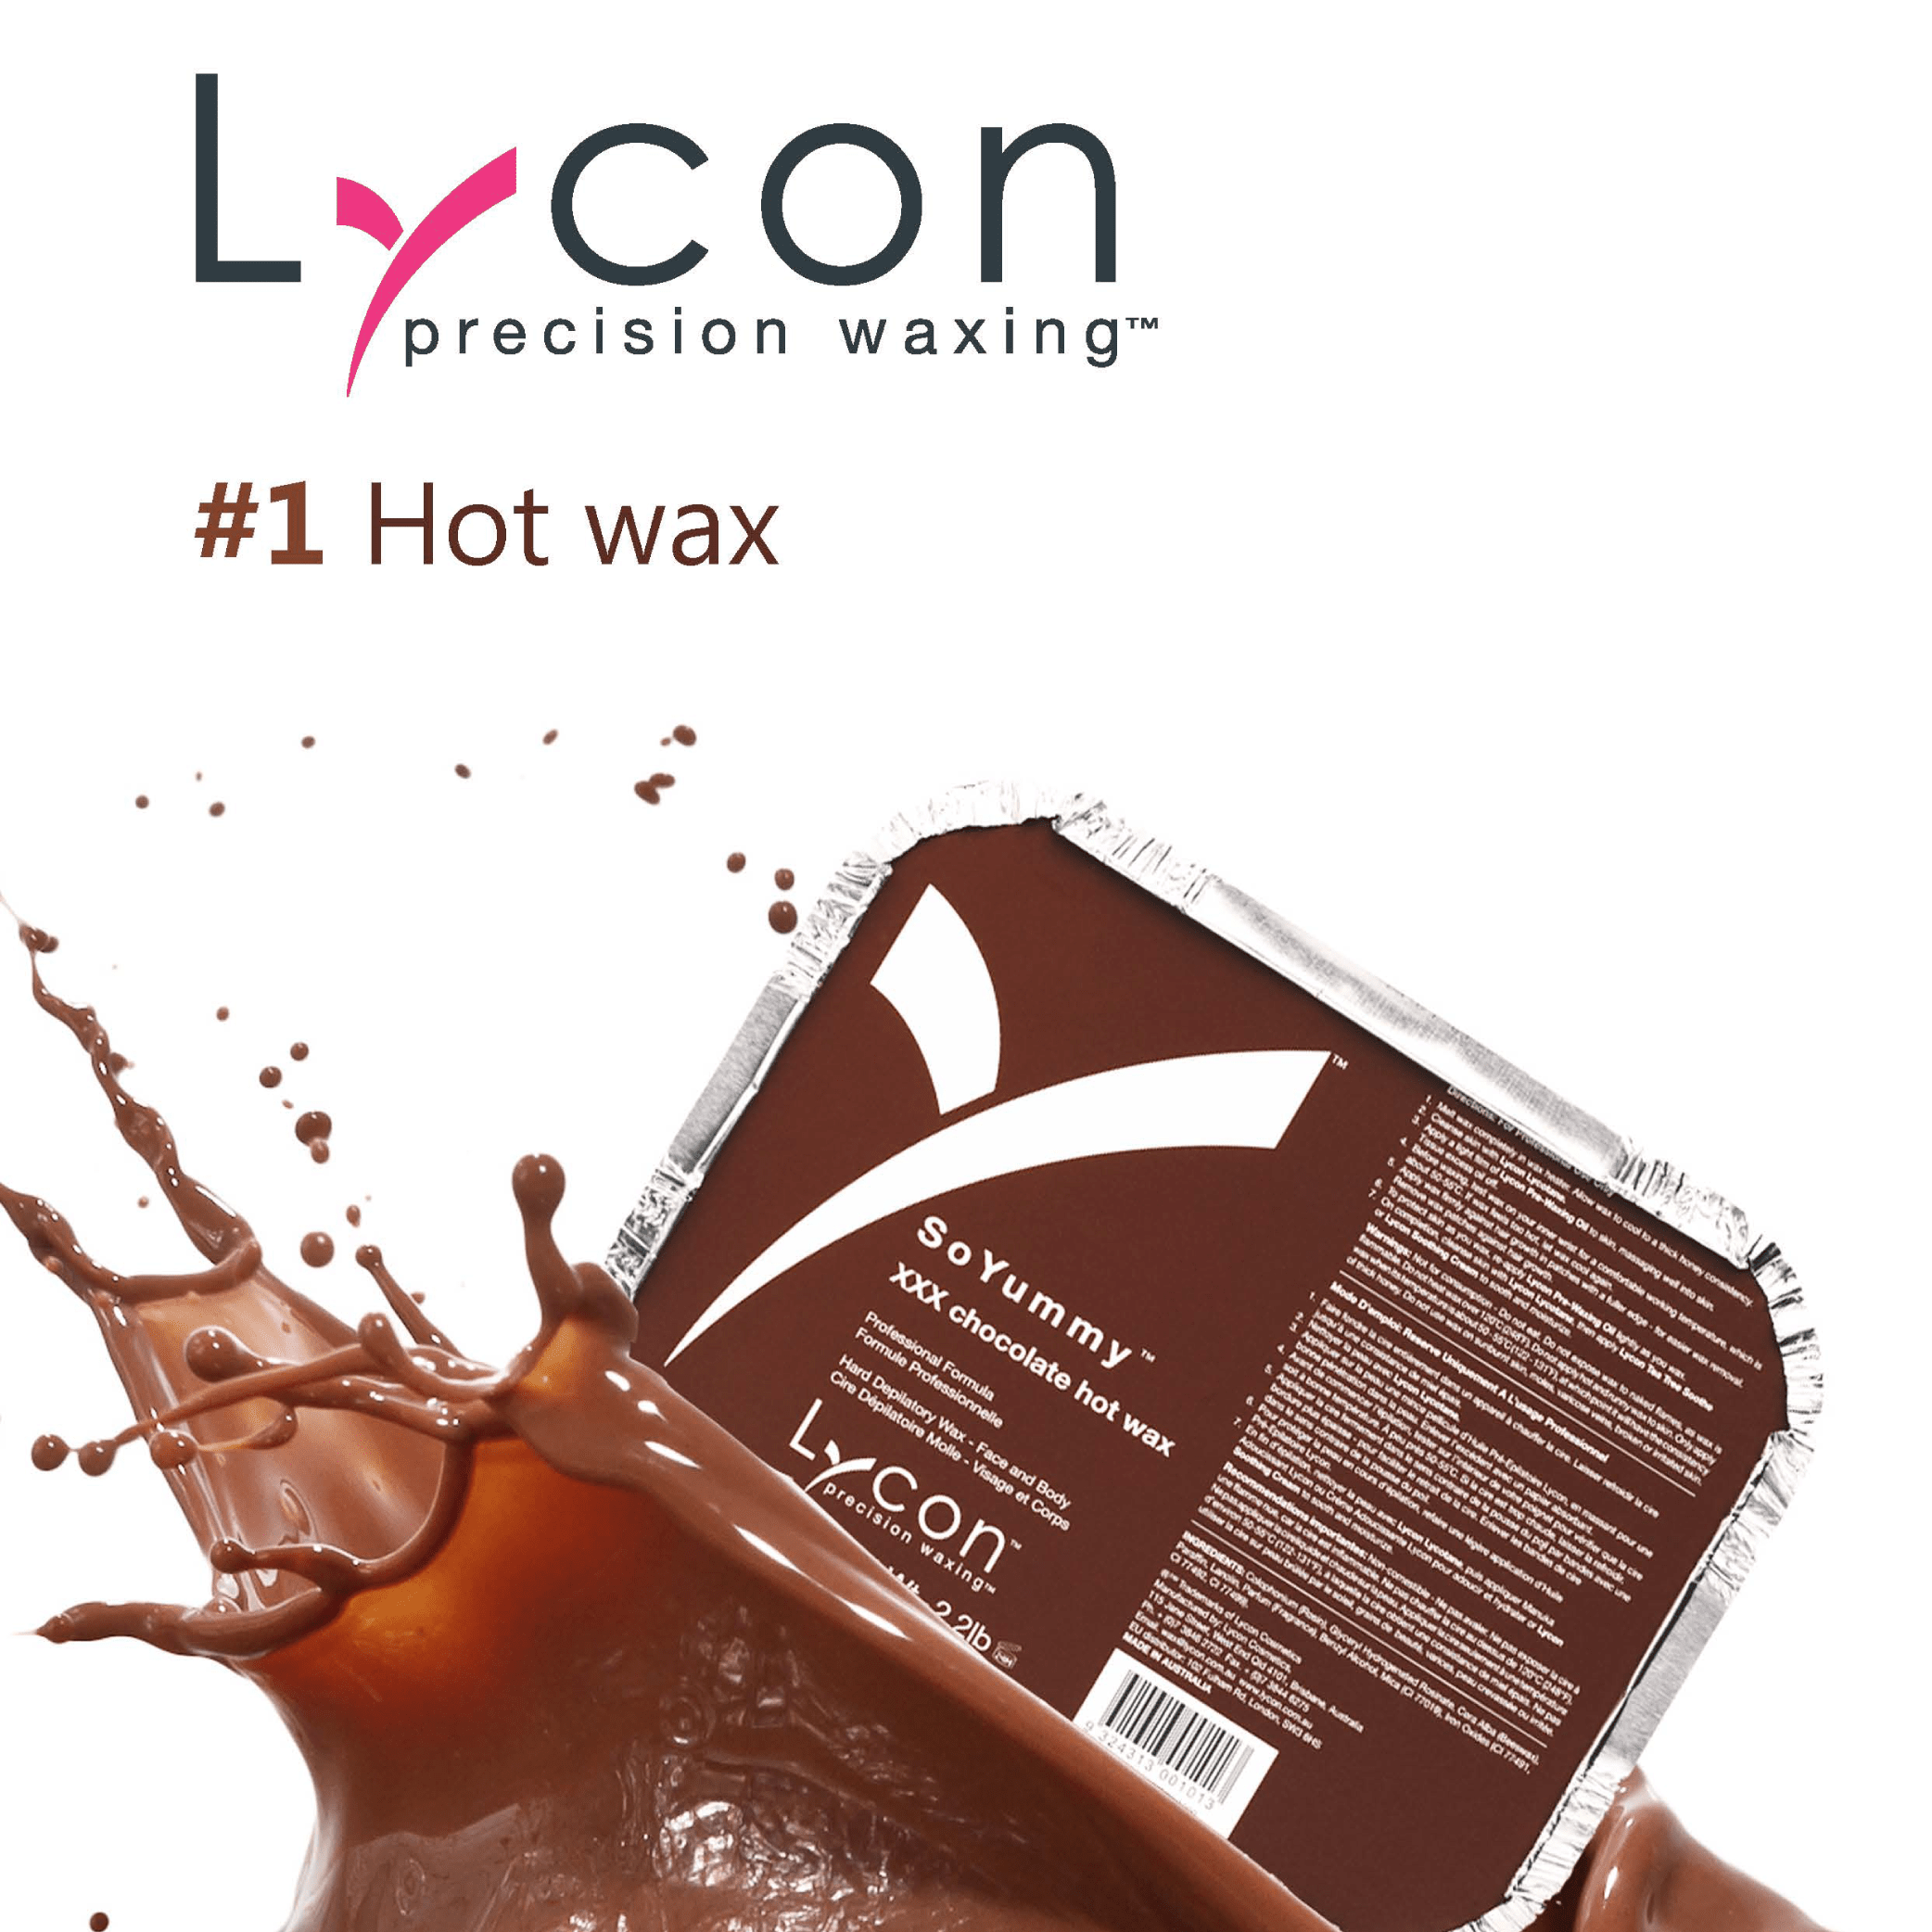 Wax and Relax - Harlow, Lycon products